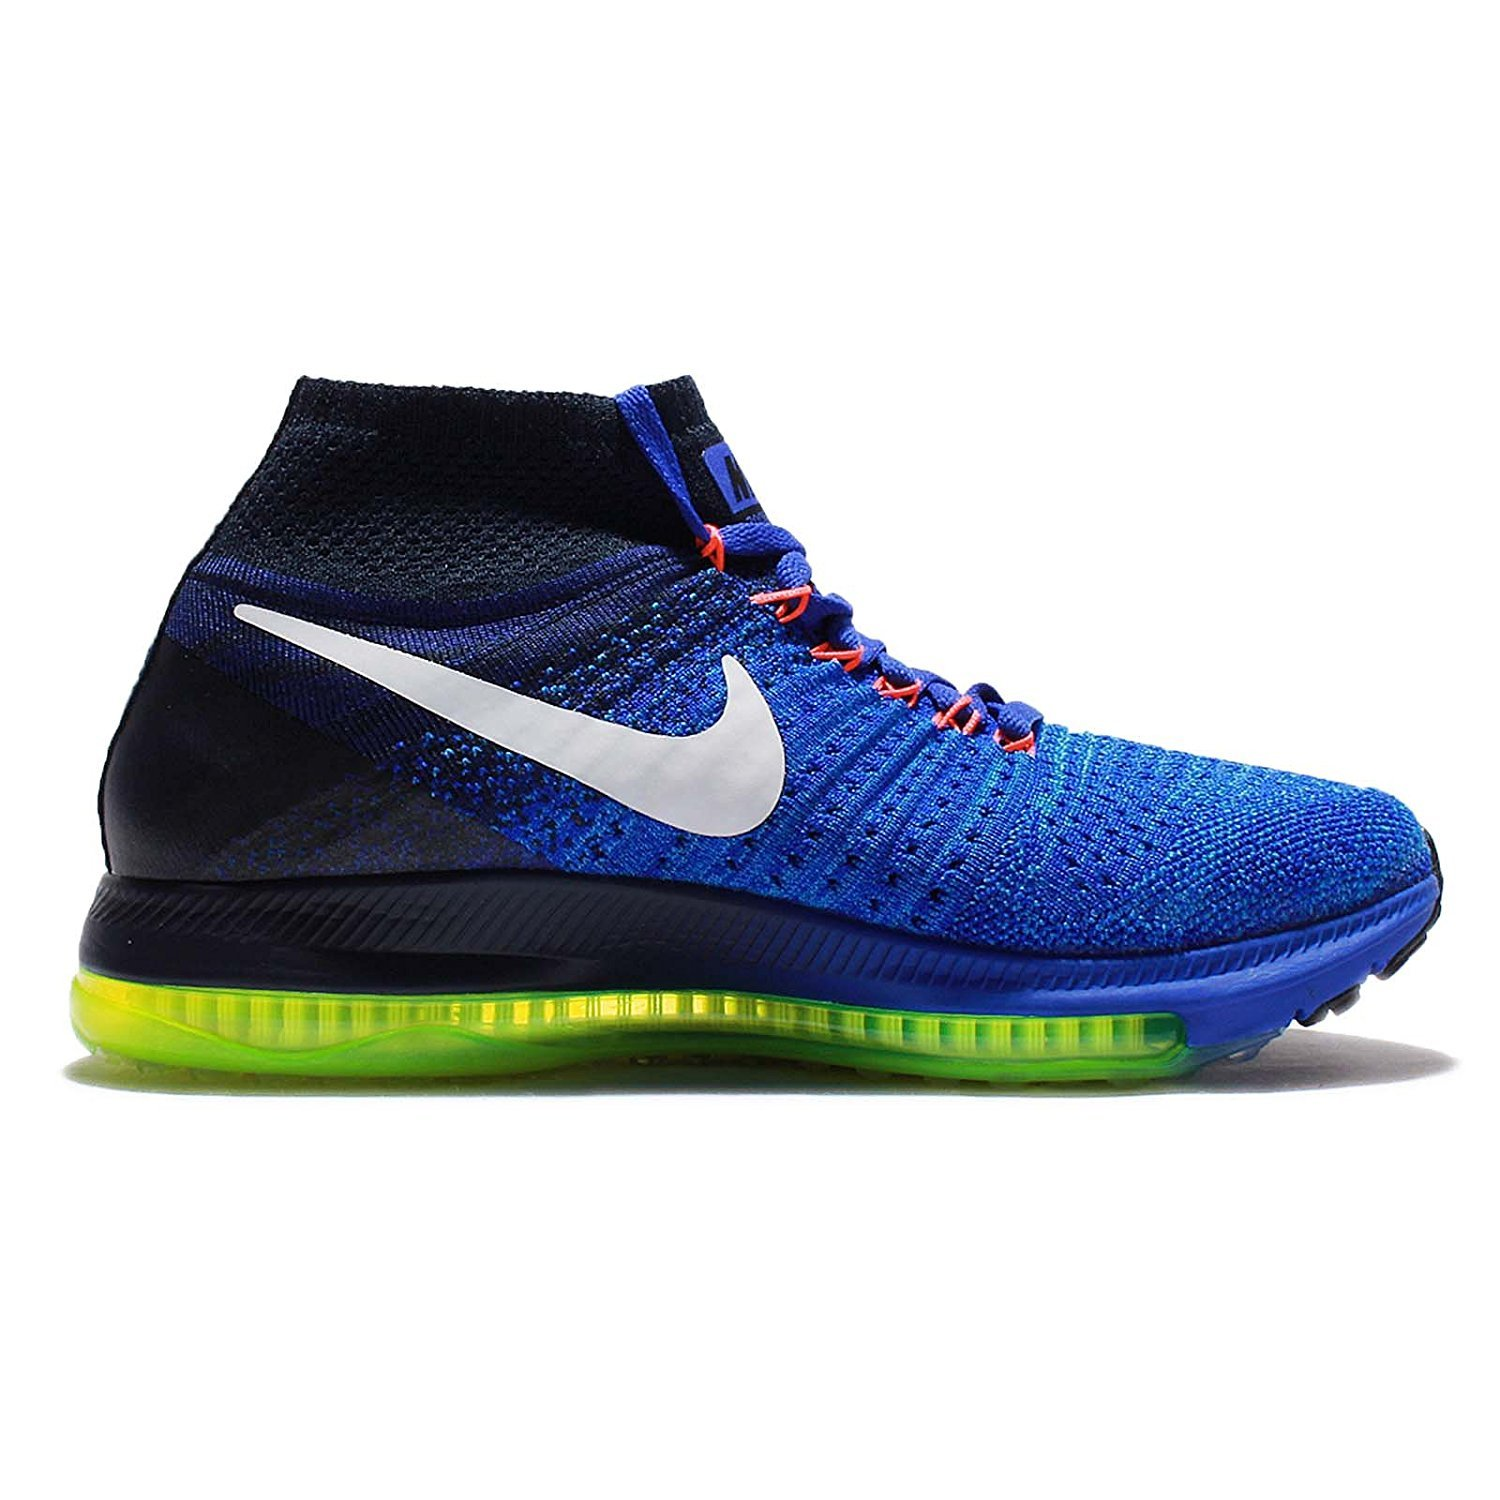 Sapatilhas de Out Branco Corrida Nike para Mulher Zoom Out Flyknit ... 4b603e6bcd8a8